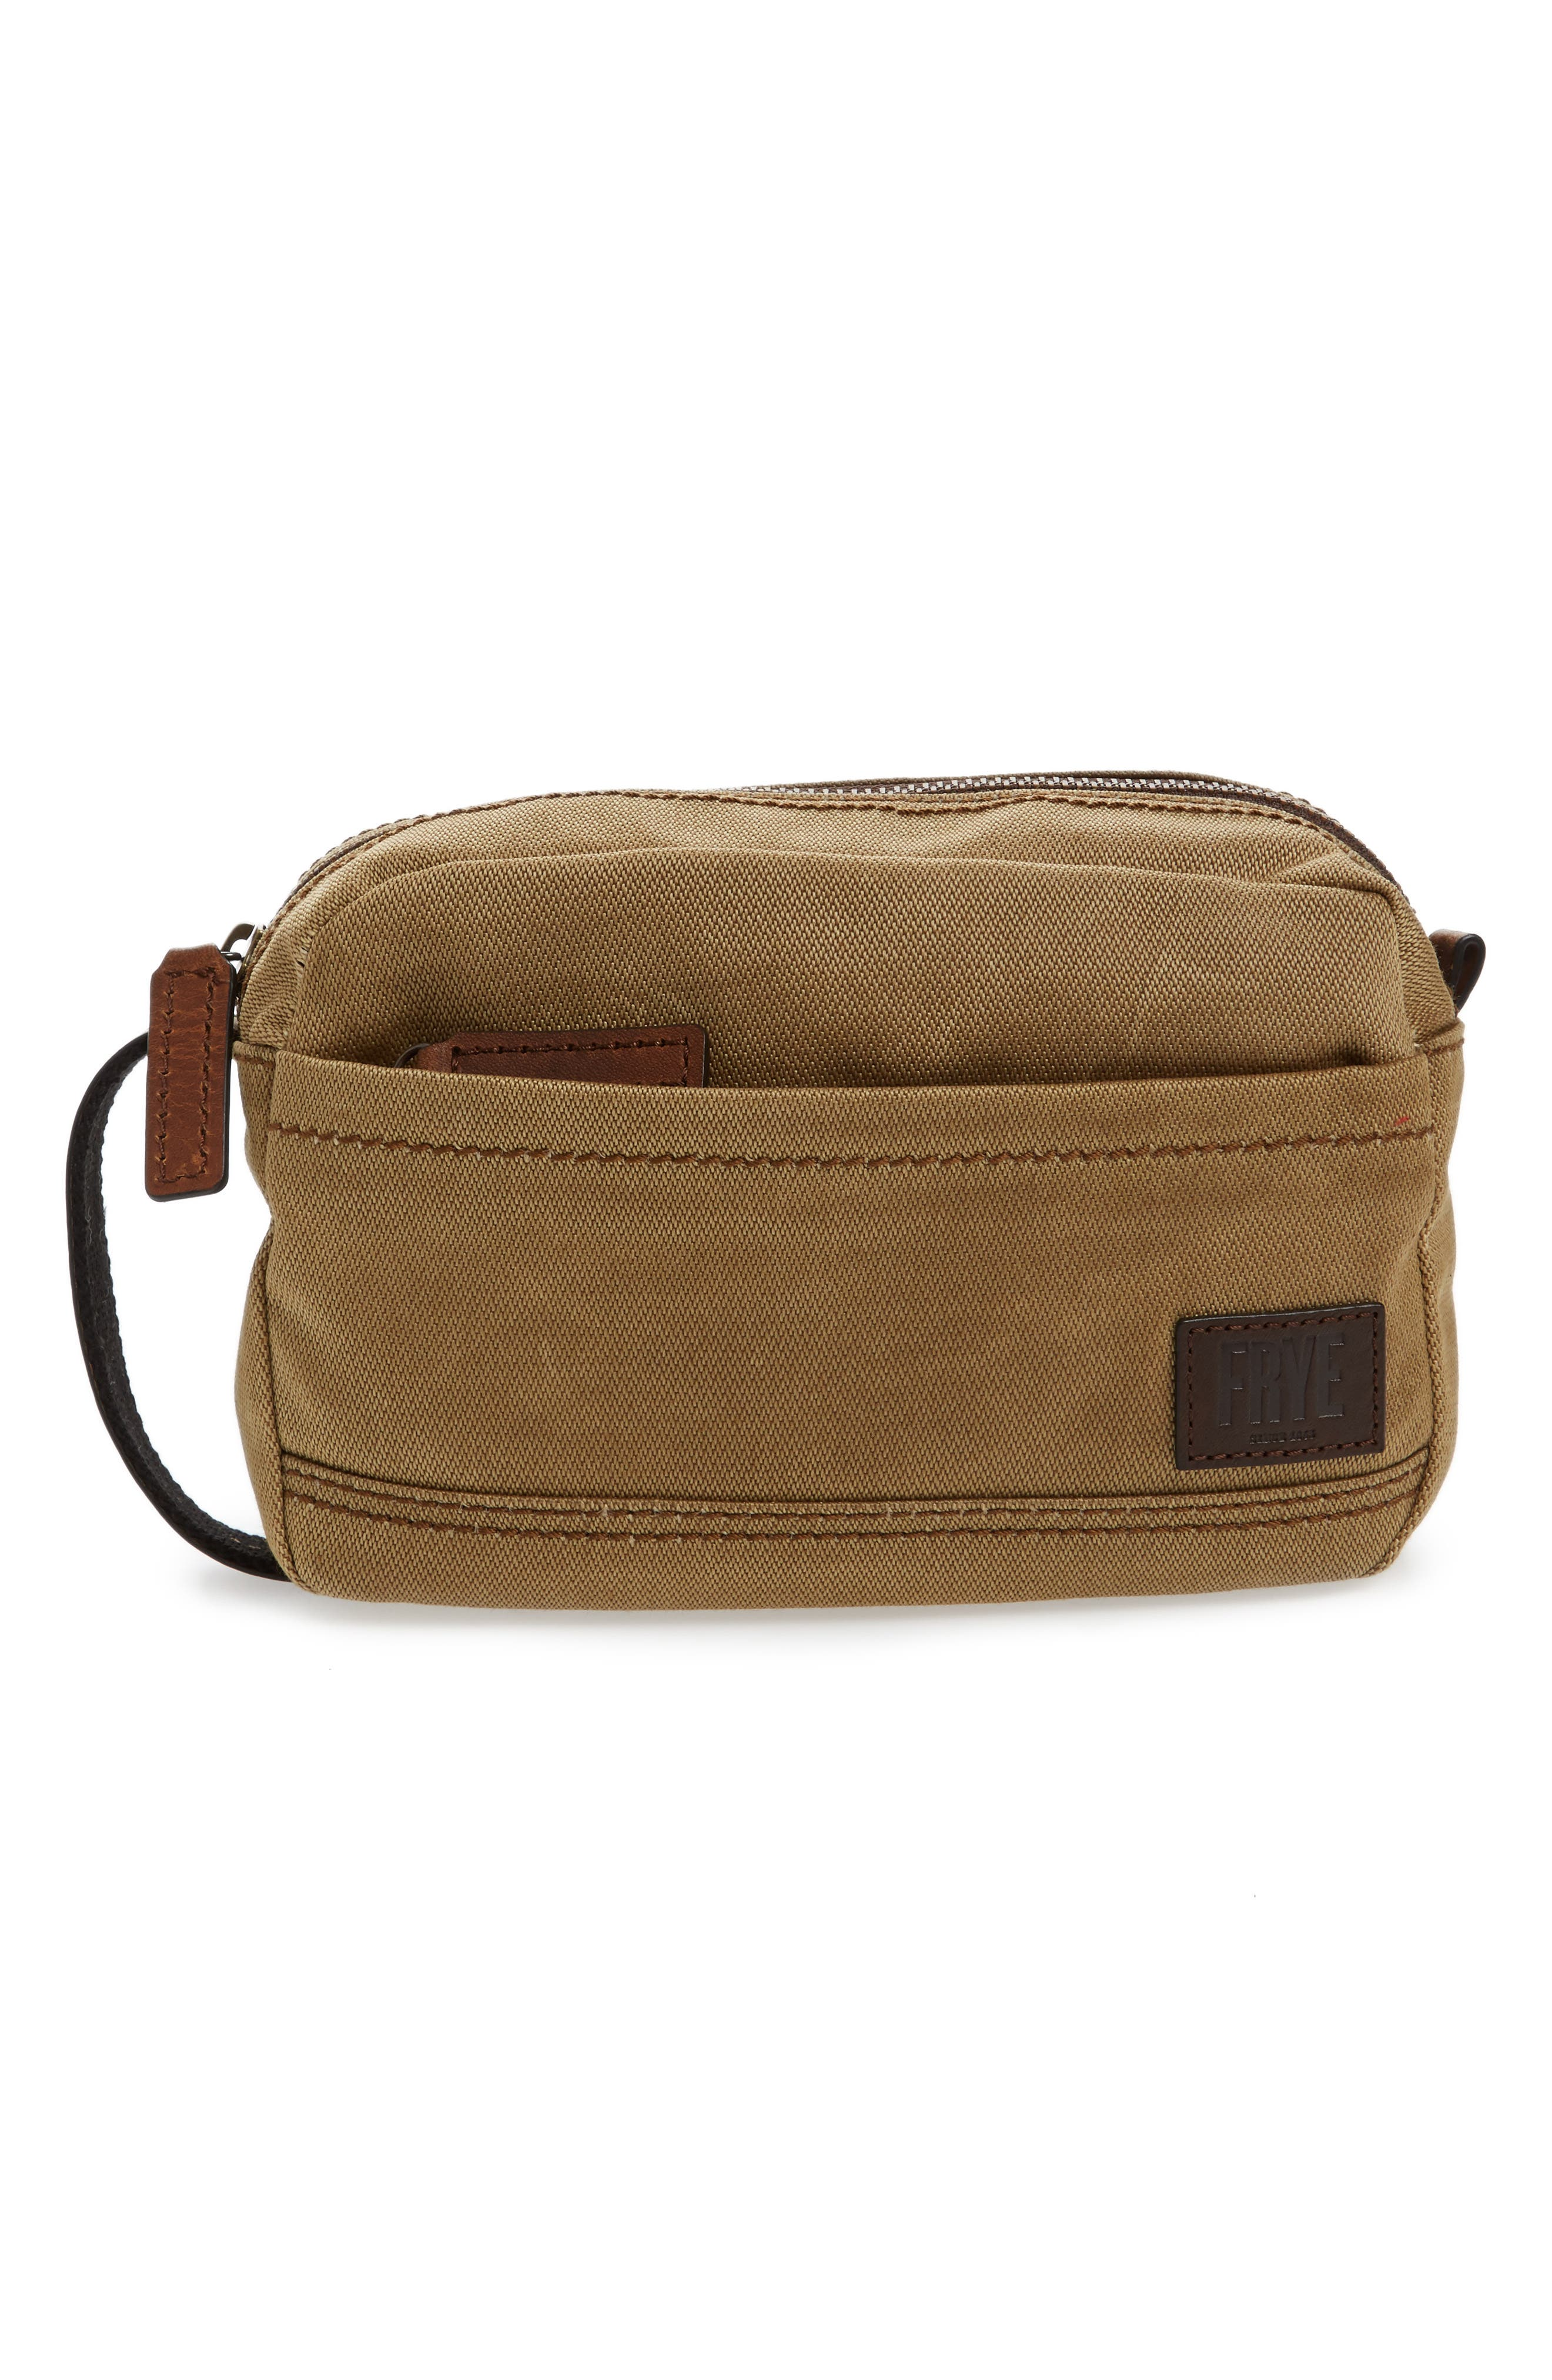 Carter Dopp Kit,                         Main,                         color, 231